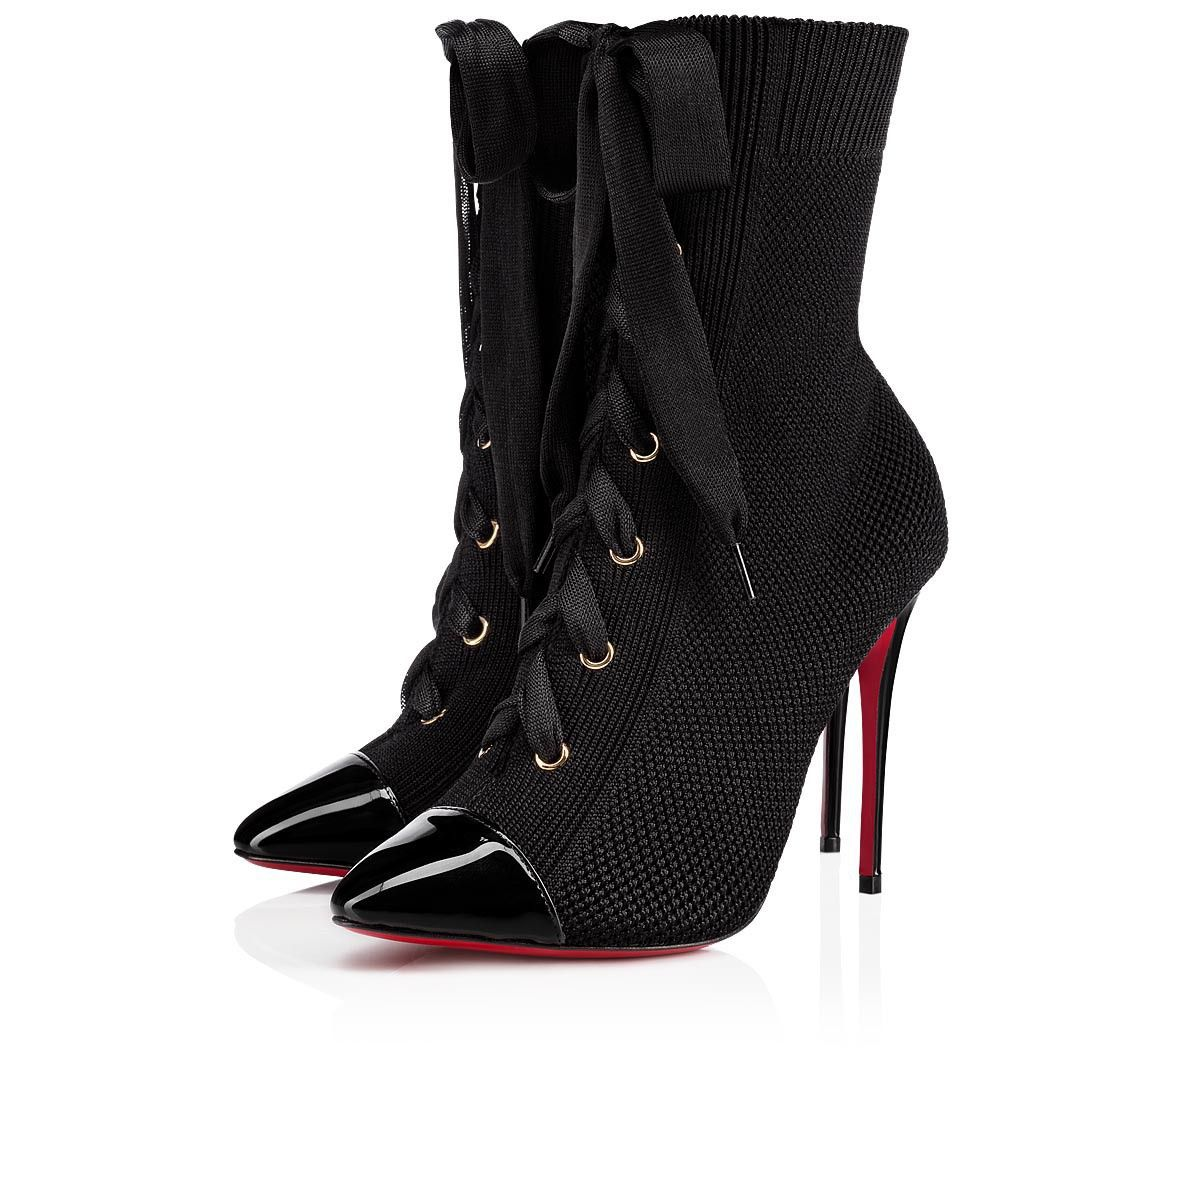 f9482ddf8d50 Christian Louboutin Hong Kong SAR China Official Online Boutique - Frenchie  100 BLACK Cotton available online. Discover more Women Shoes by Christian  ...